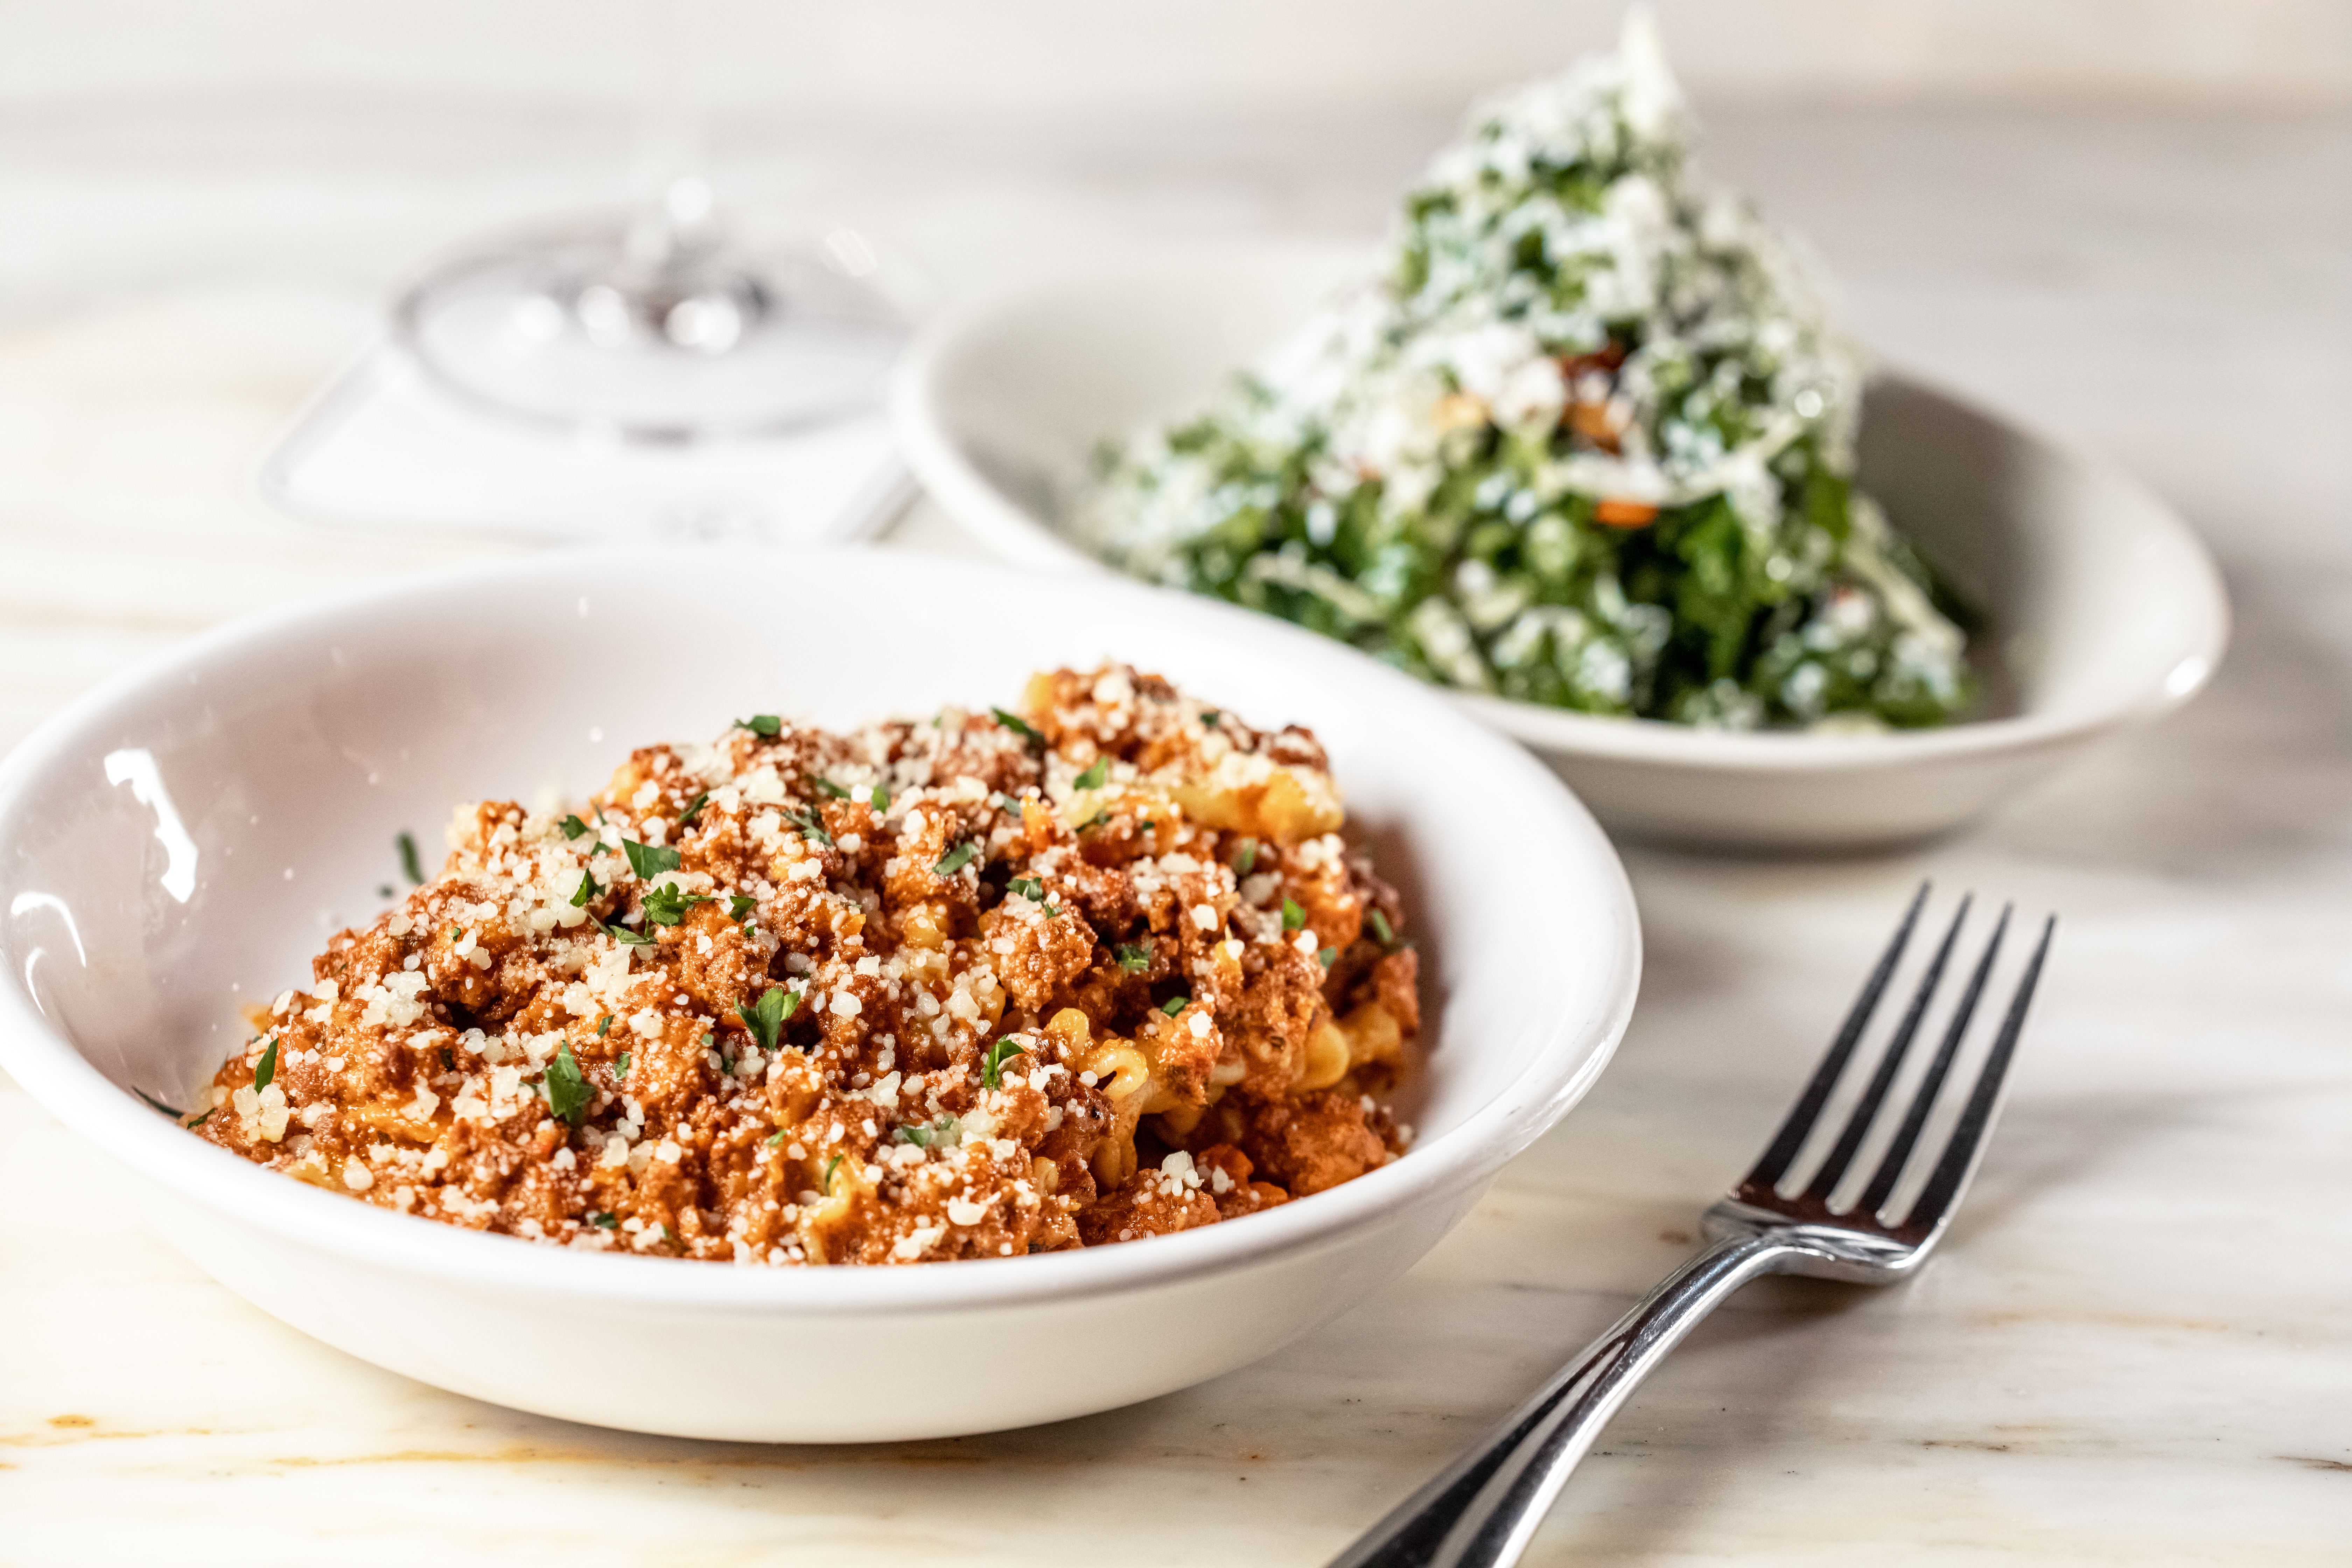 Pasta bolognese served in a white bowl